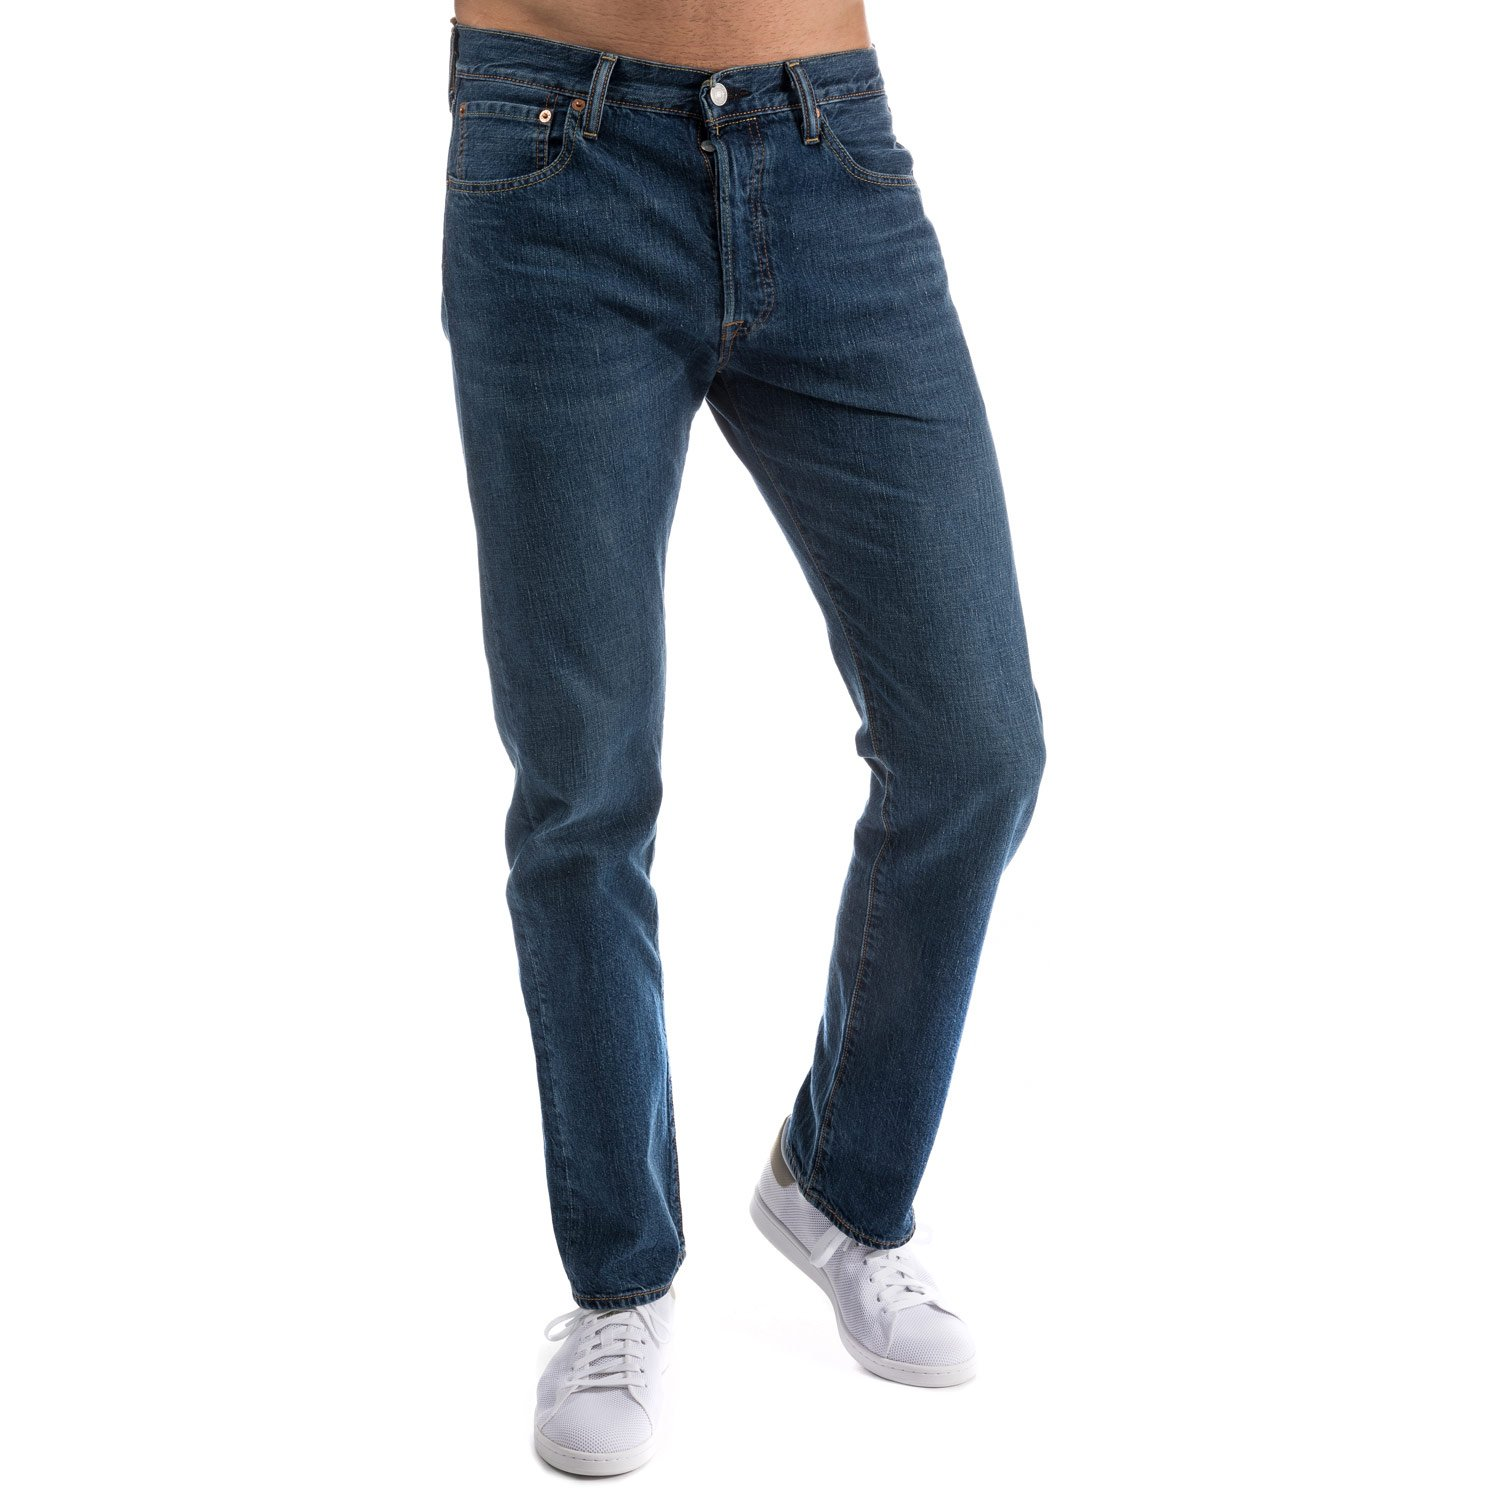 7821202a Levi's original fit 501 men's jeans straight leg, button-fly, W 34 L 34:  Levis: Amazon.co.uk: Clothing